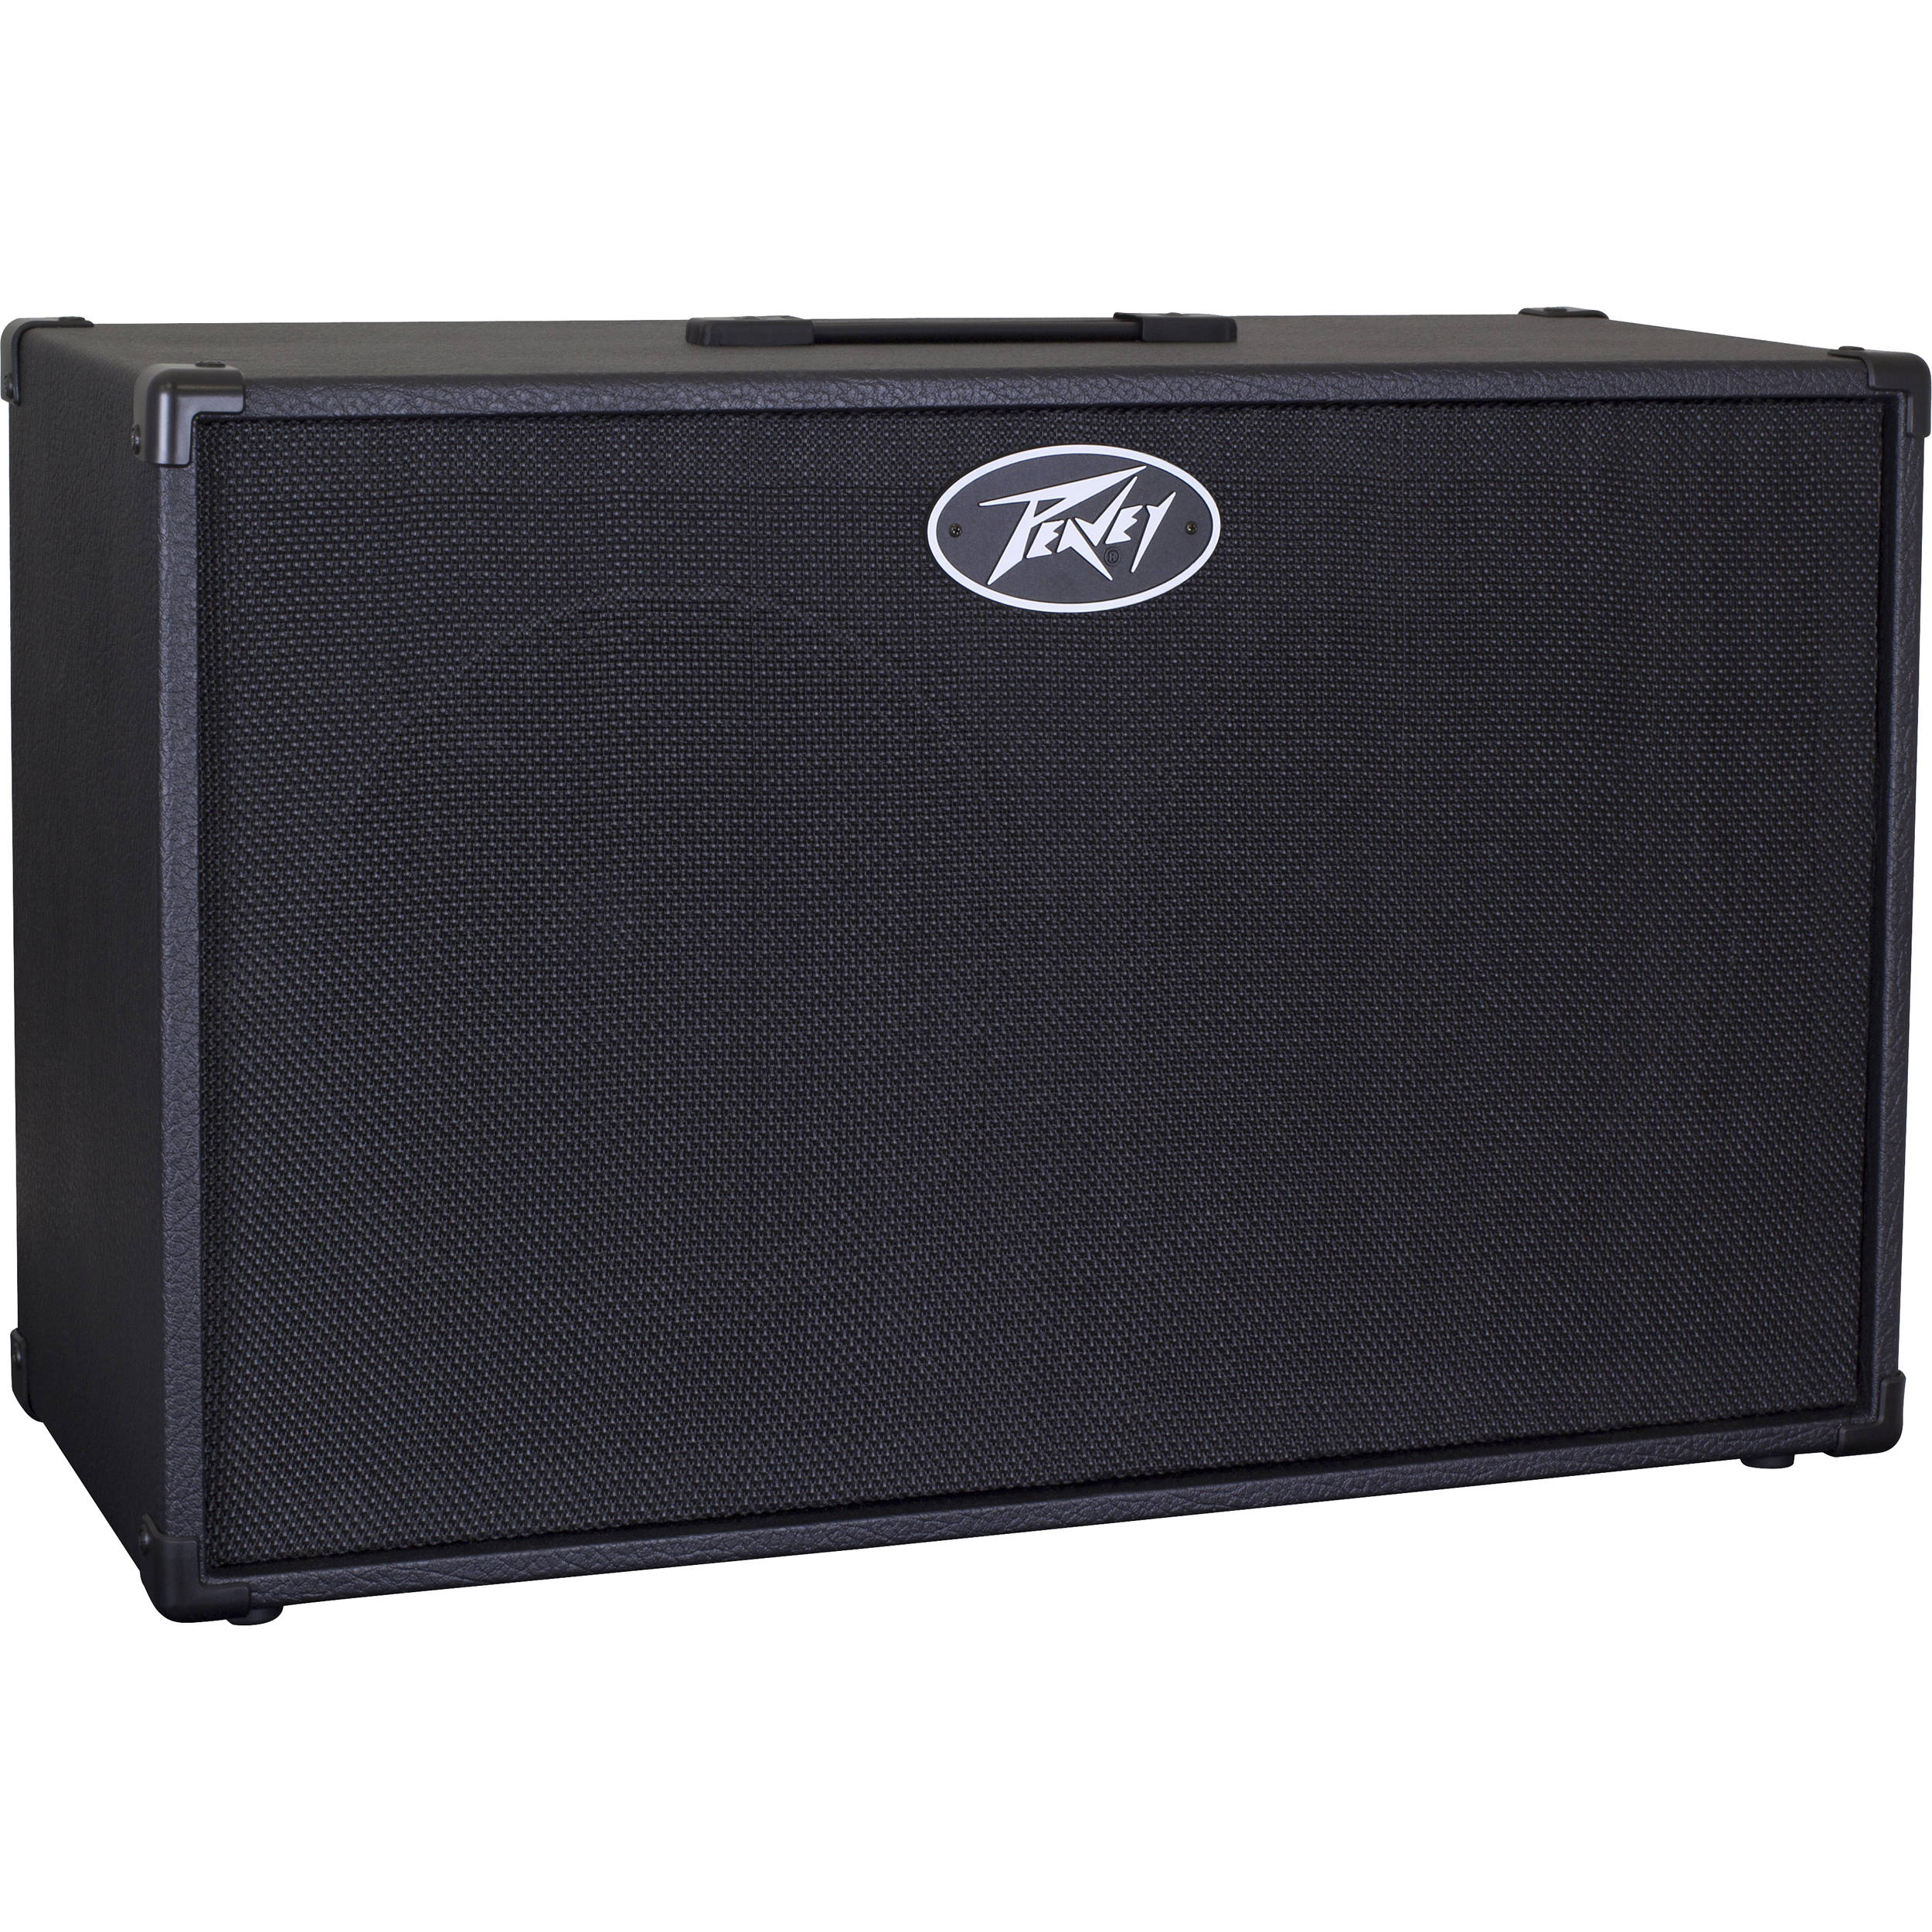 peavey 212 extension cabinet 2x12 guitar cab with 80 watts rms power rating. Black Bedroom Furniture Sets. Home Design Ideas